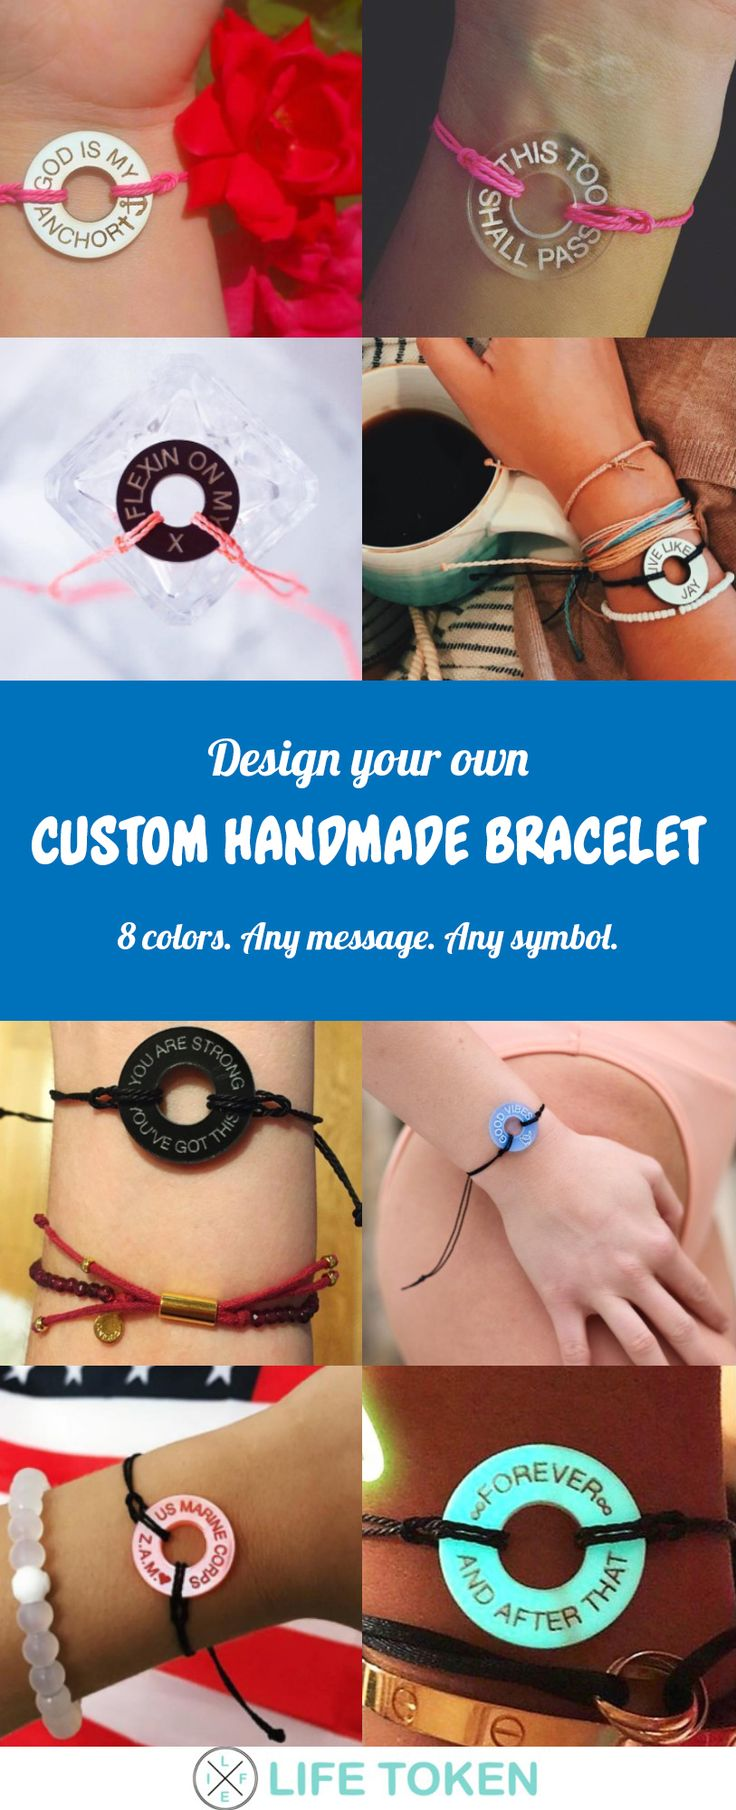 Custom handmade bracelets for him, for her, for couples. Custom bracelet maker and custom engraving. Any message, any language, any symbol. Custom friendship bracelets with names. Handmade bracelets with string. Personalized jewelry.